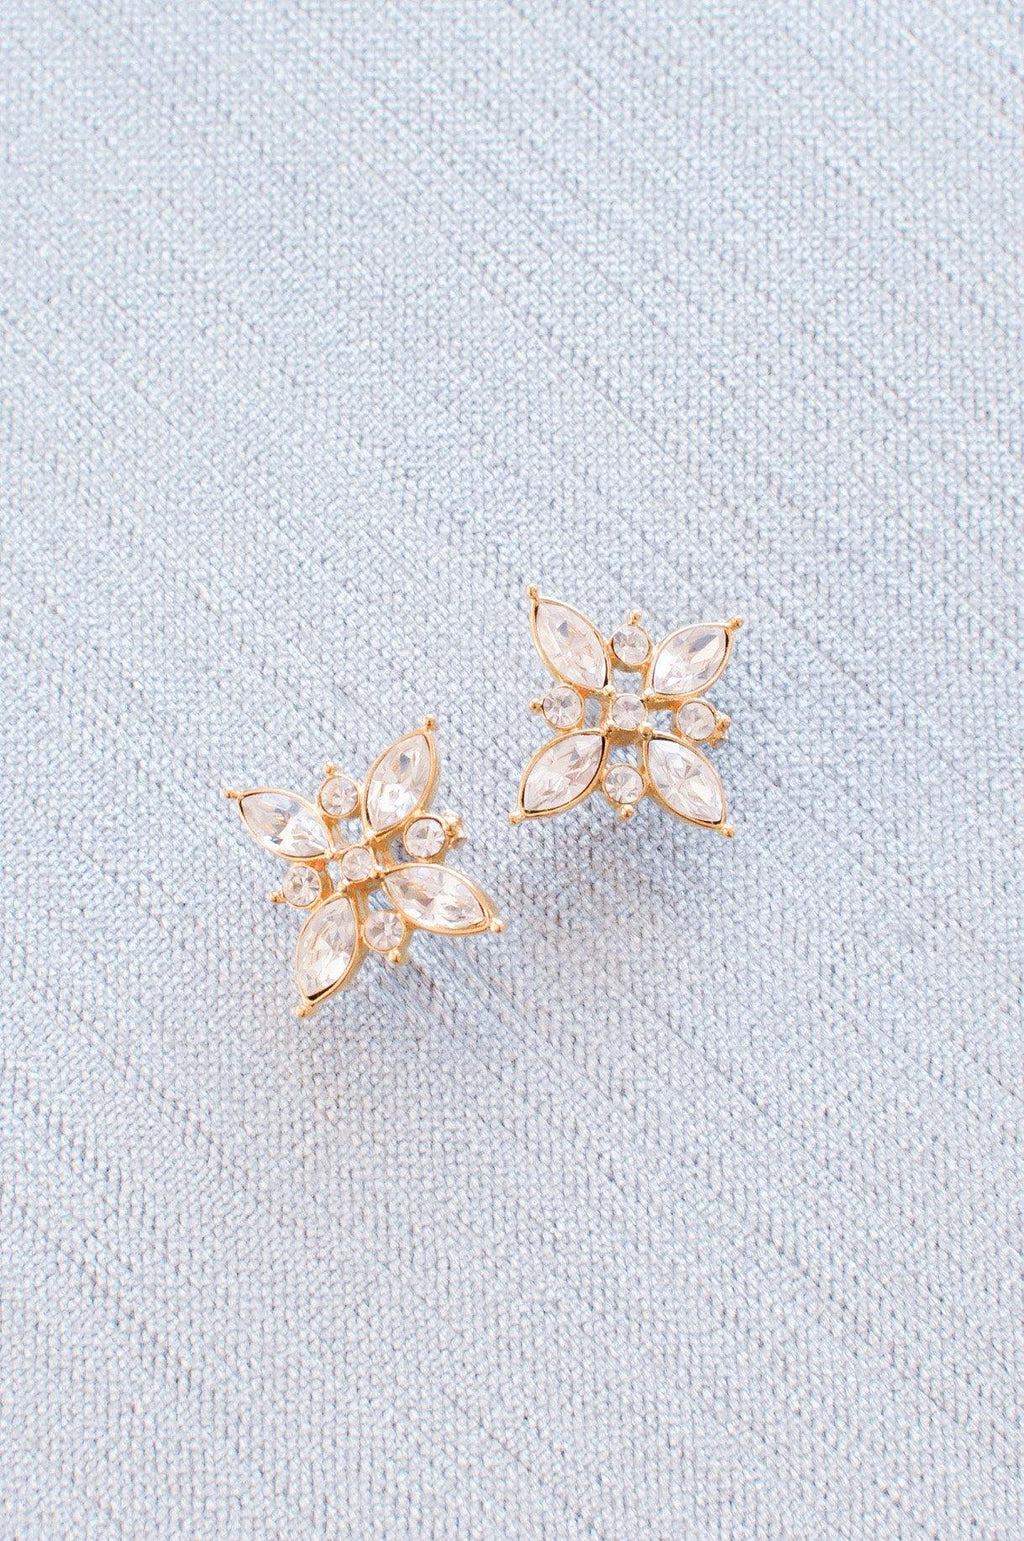 Rhinestone Diamond Pierced Earrings